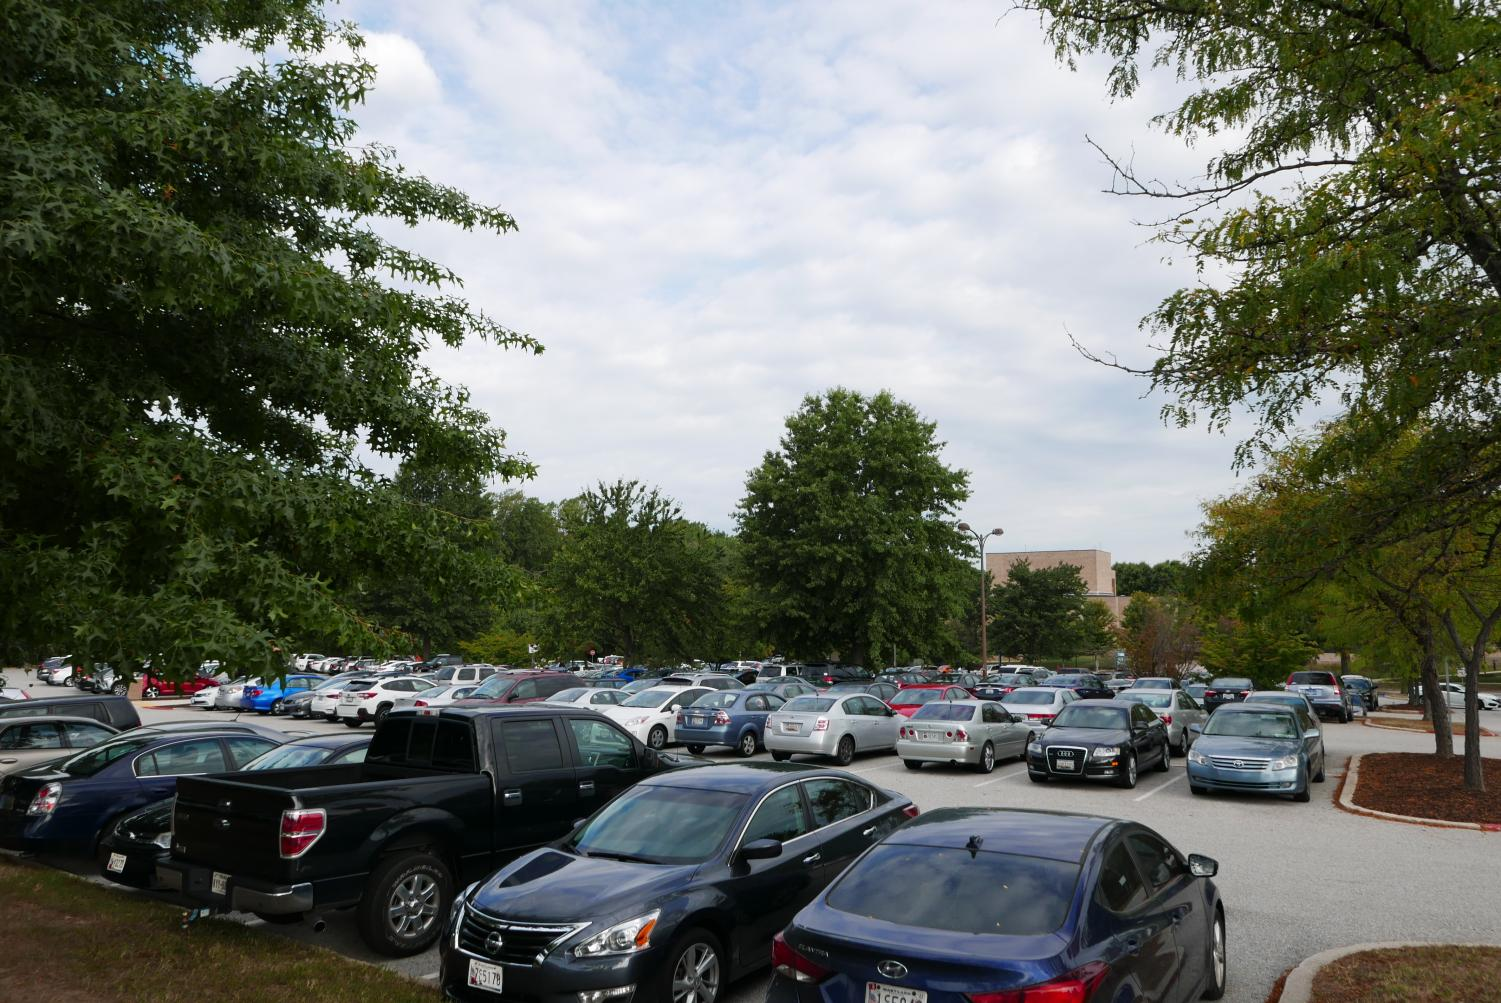 AACC students say parking is hard to find on campus, especially earlier in the day when classes are just starting.